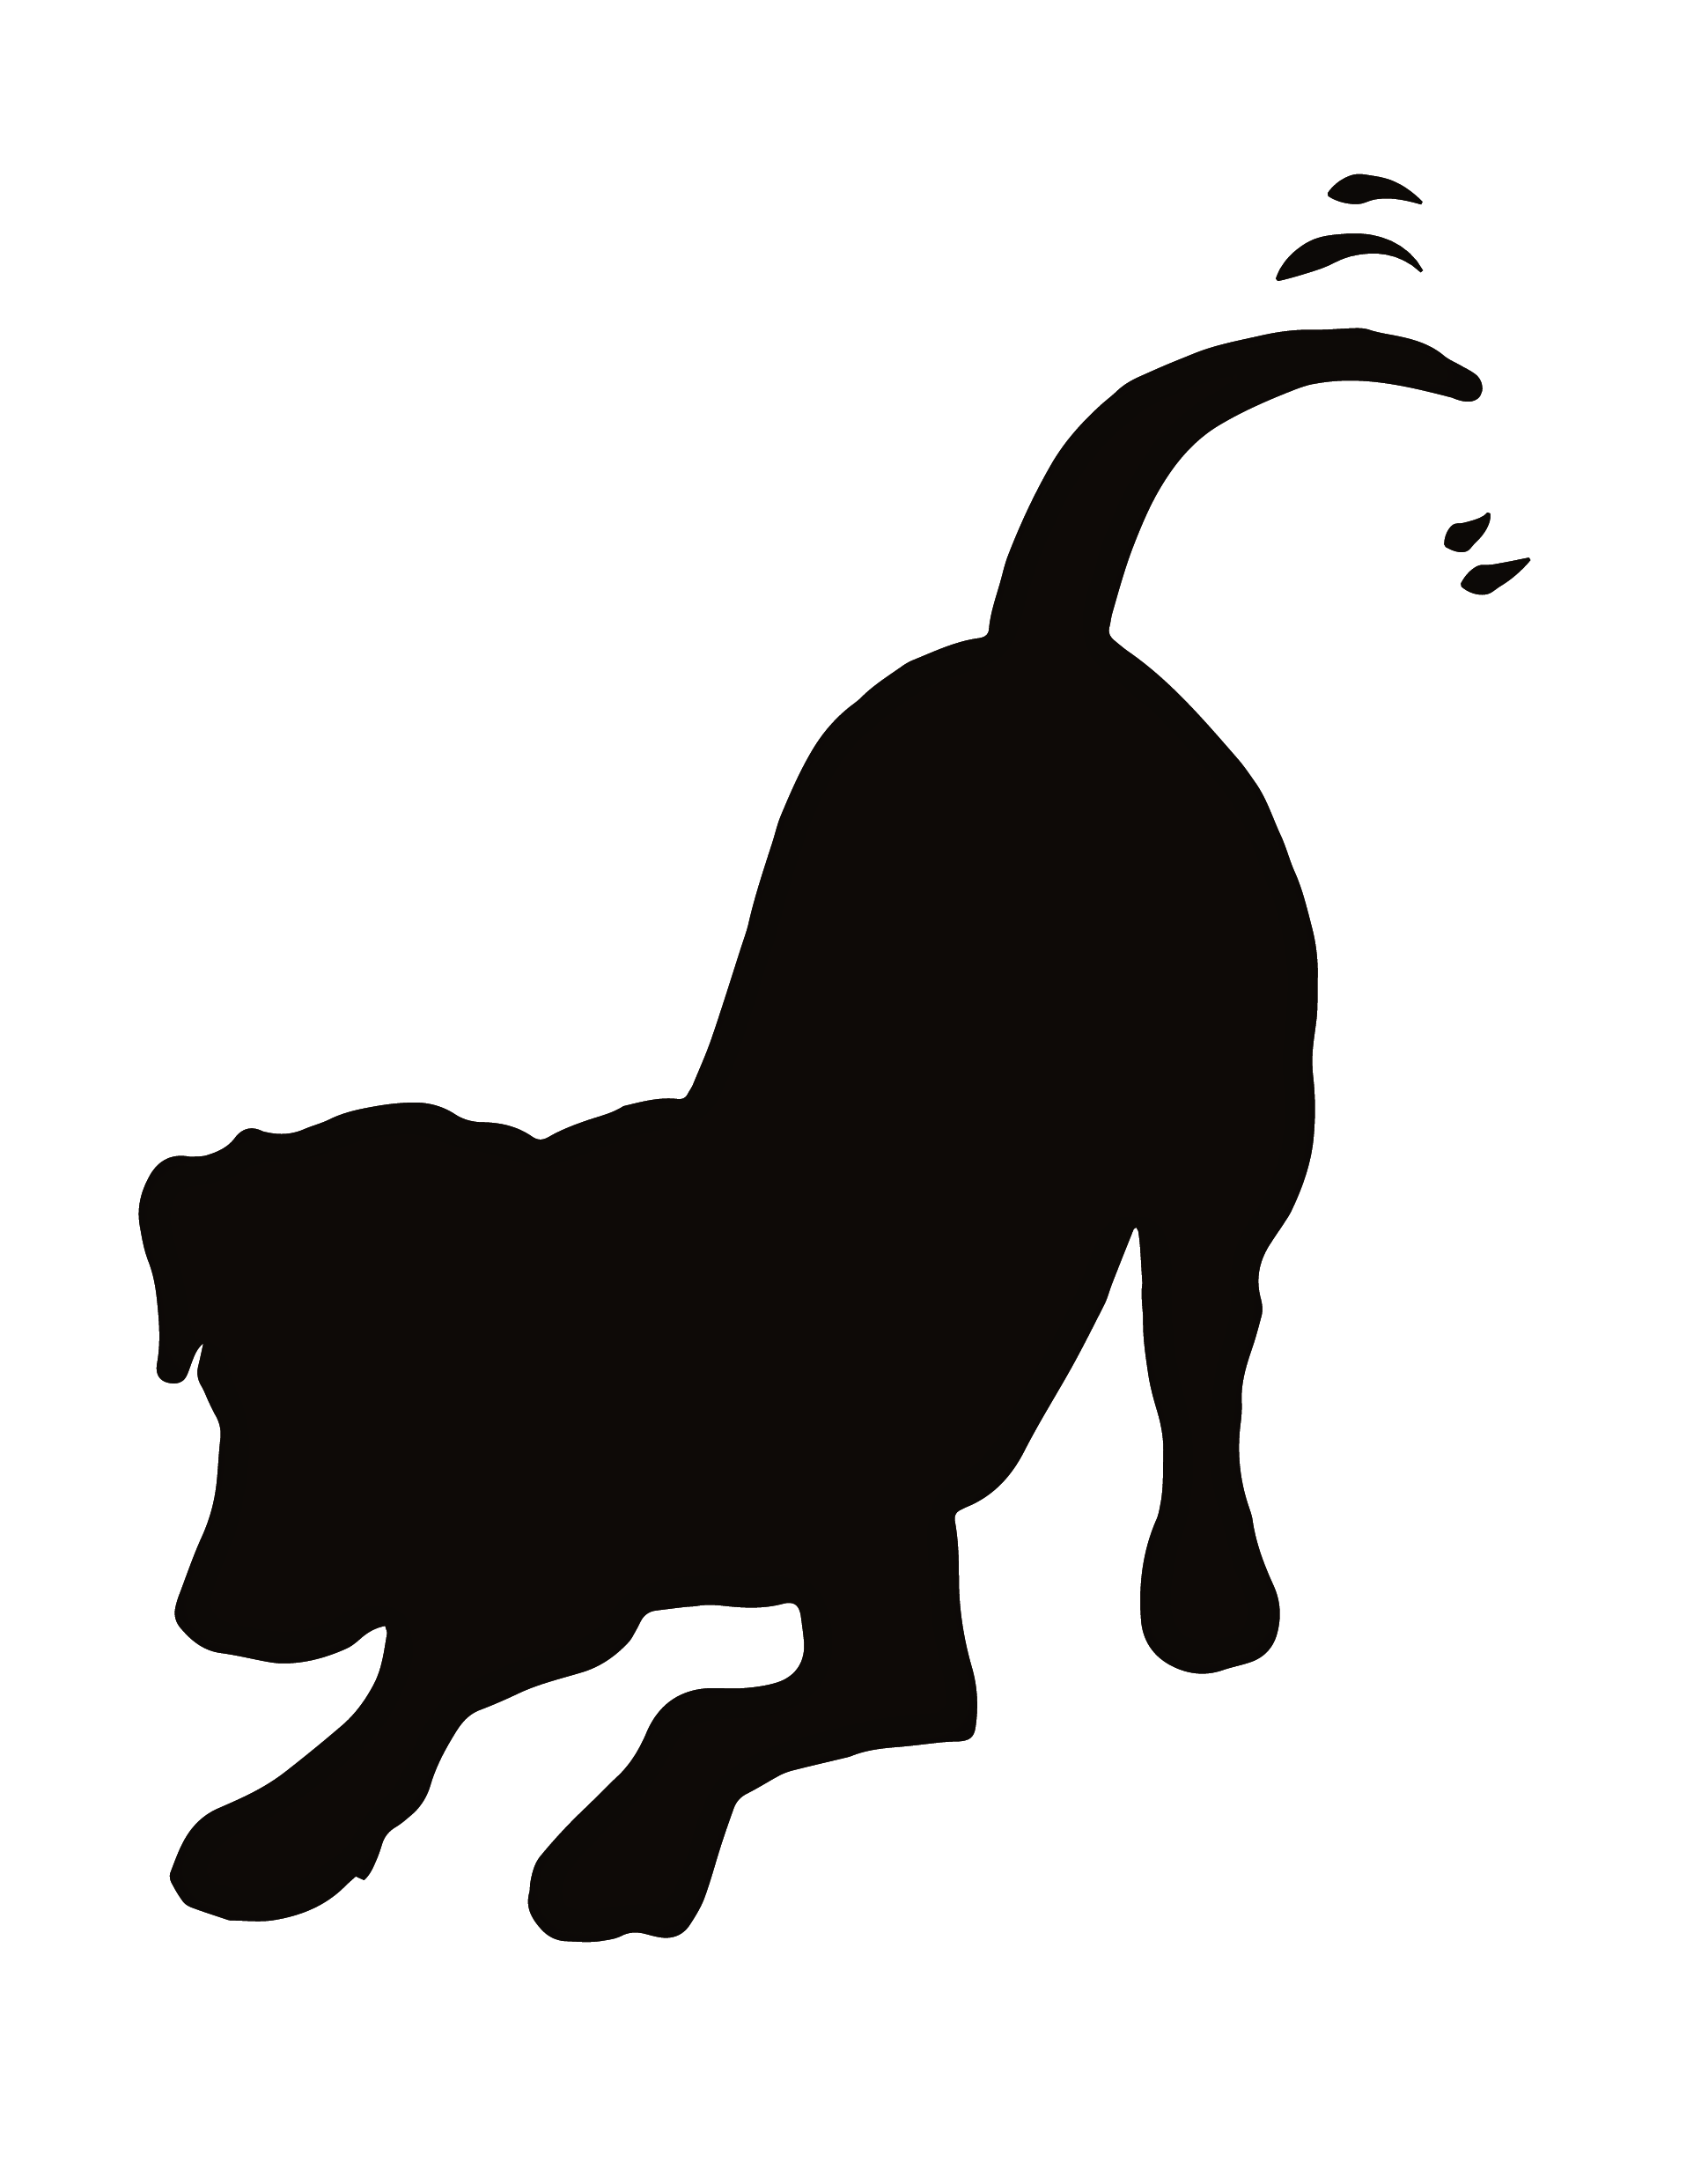 Clip Art Of Dogs Cats Puppies And Kittens Dog Clip Art Animal Silhouette Dog Silhouette